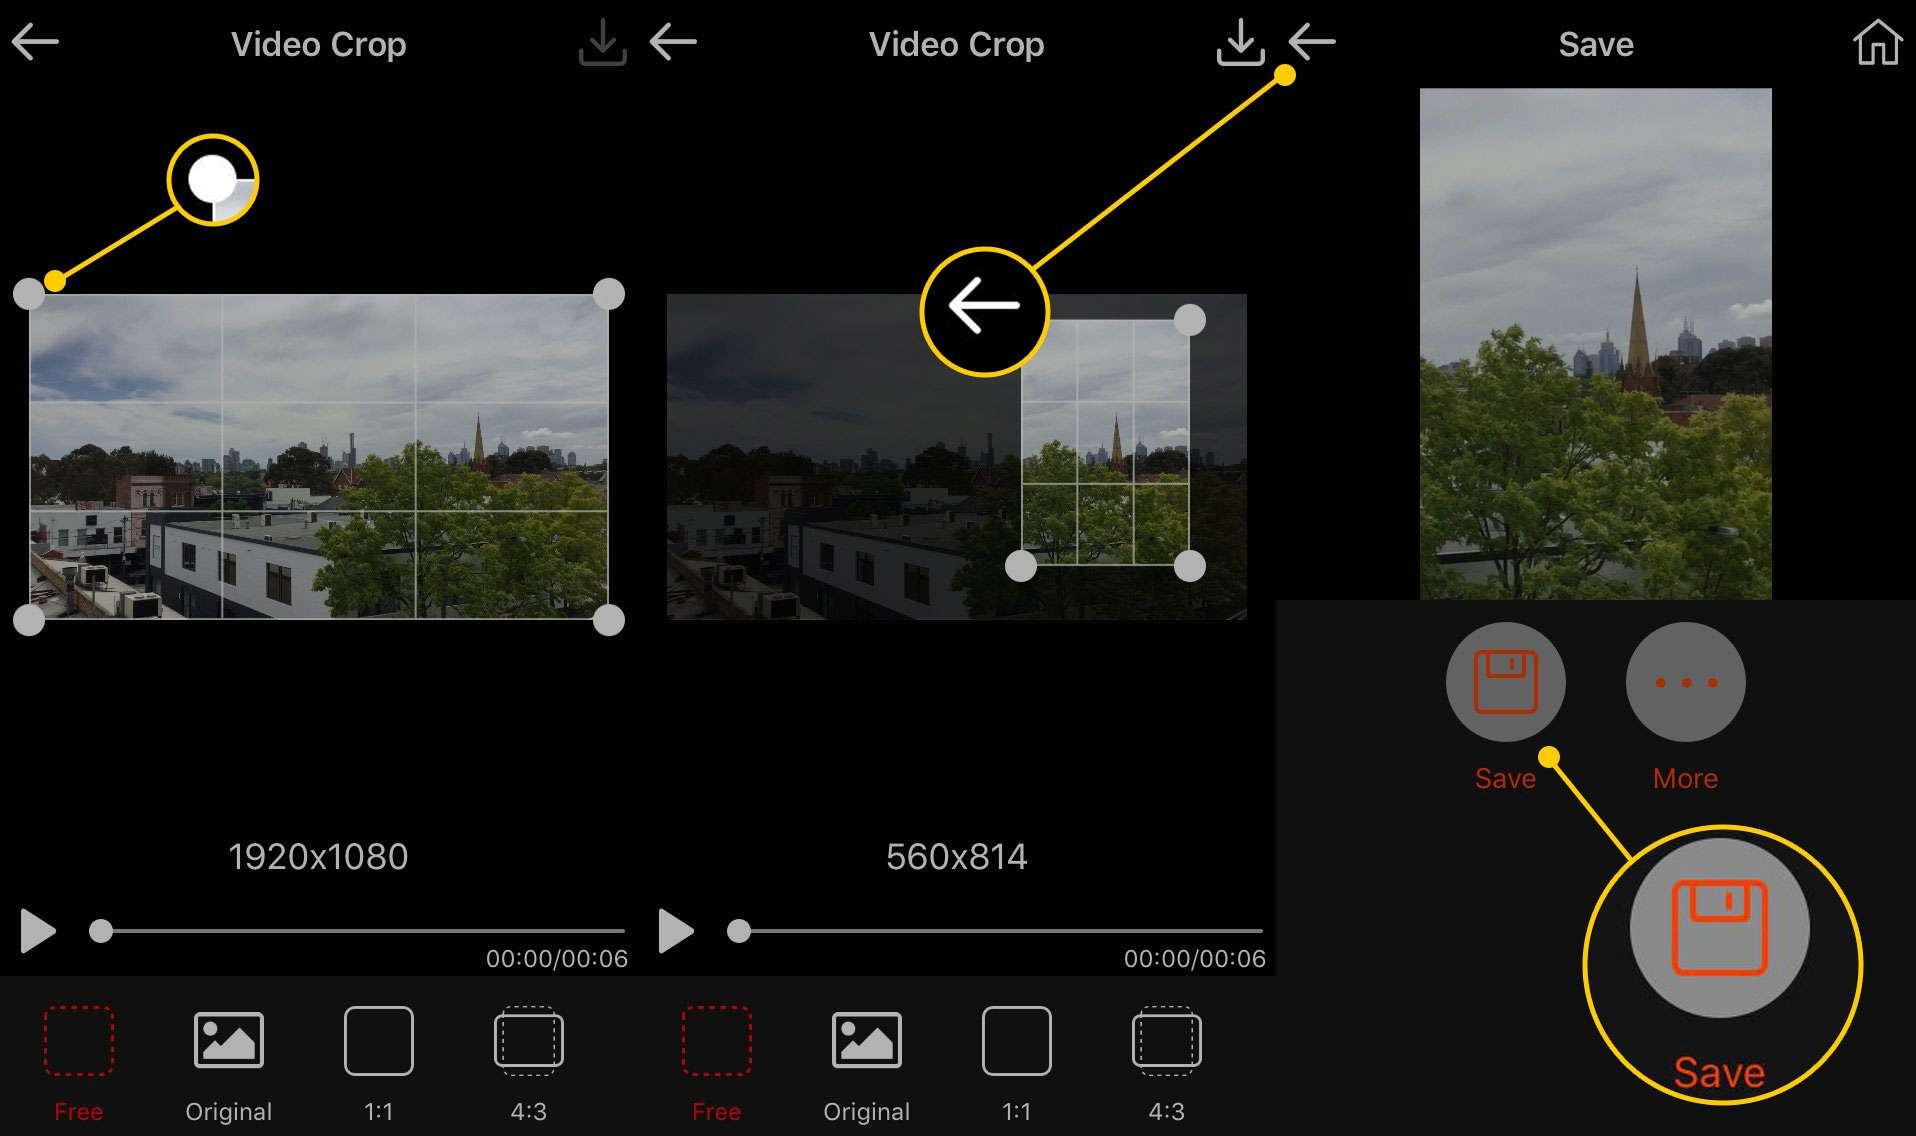 Cropping and saving a video in Video Crop for iOS